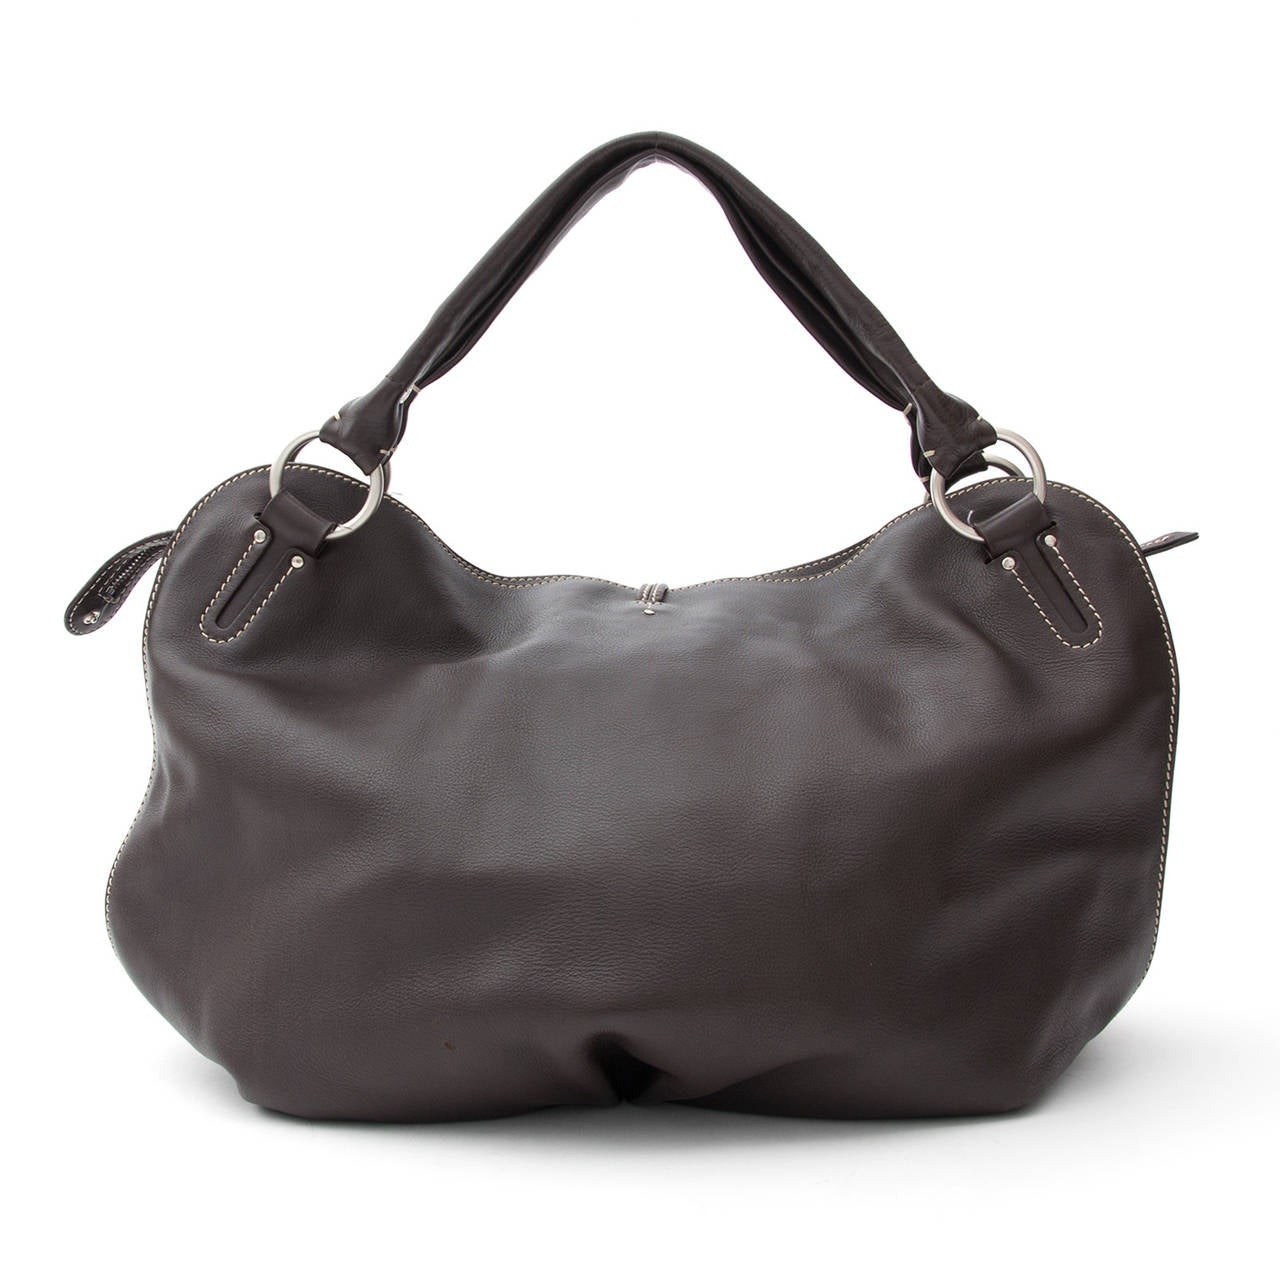 Celine Bittersweet Dark Brown Large Hobo Bag For Sale at 1stdibs